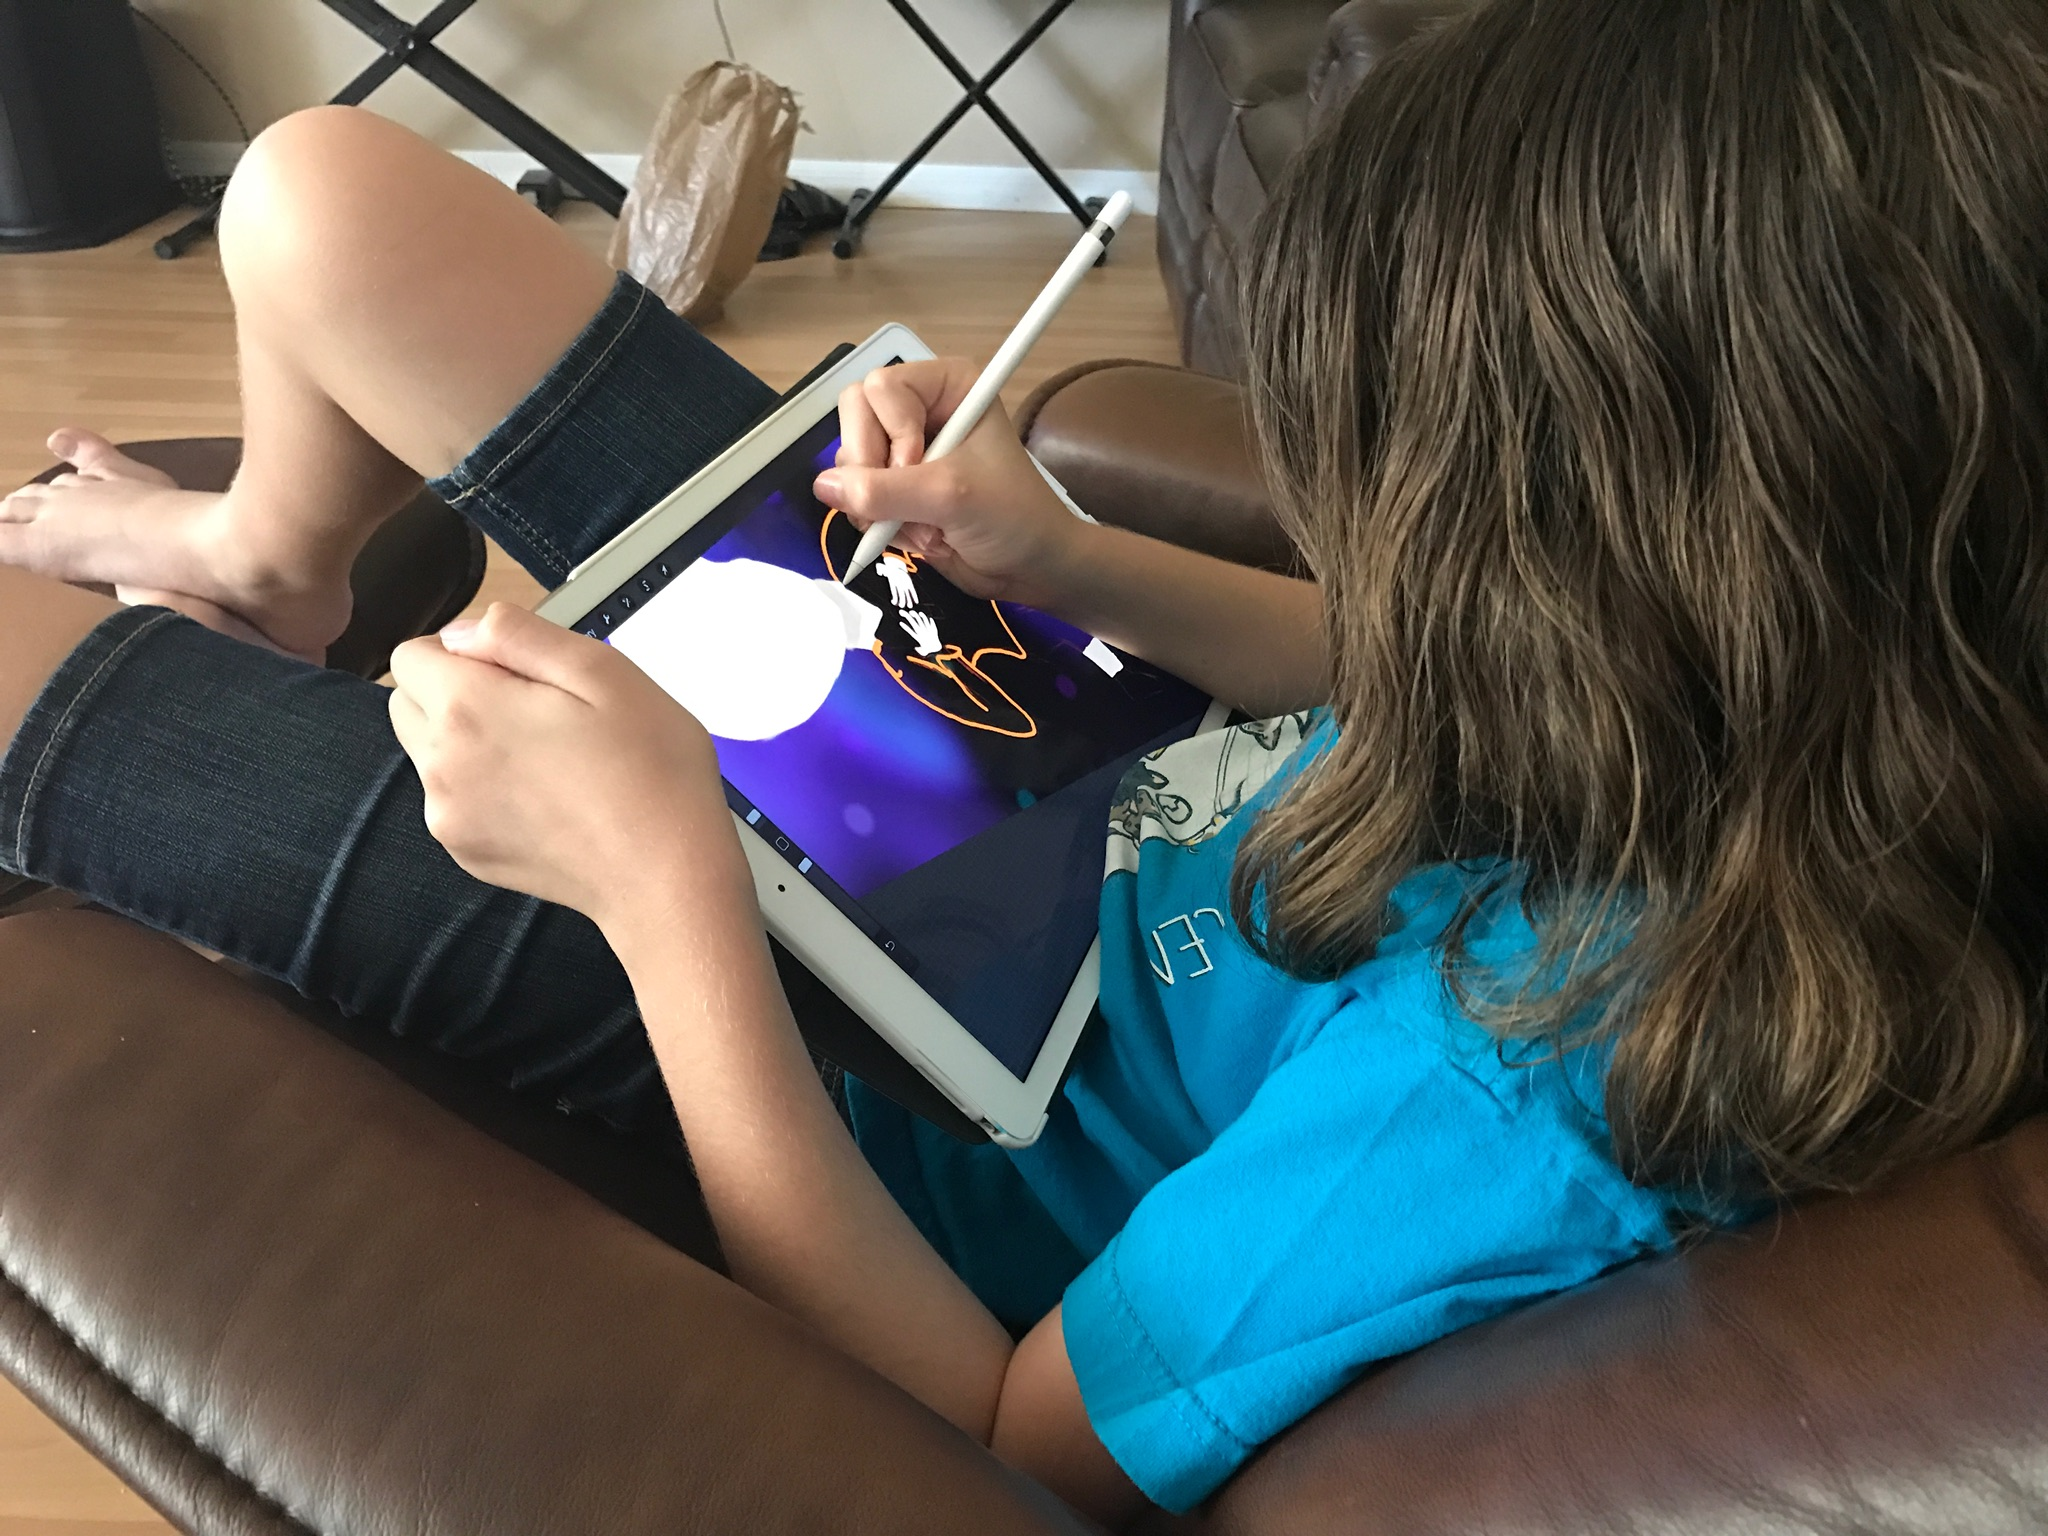 My daughter creating artwork for a comic book she is writing for school